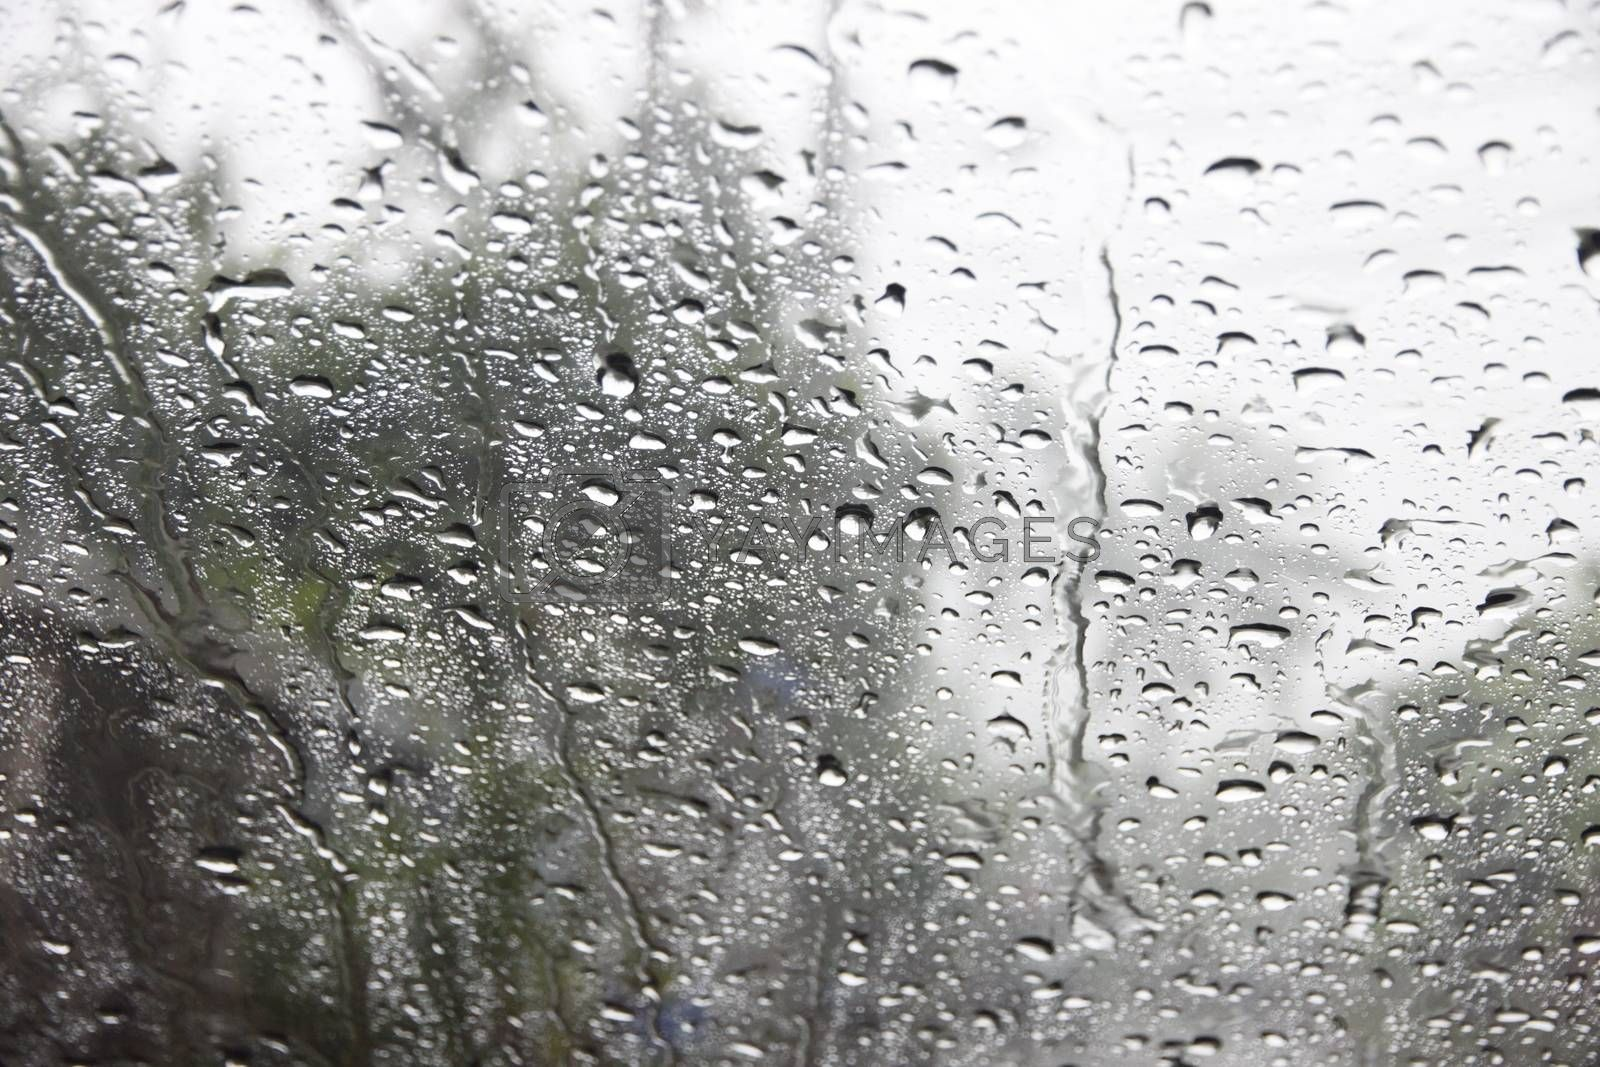 Dew on the mirrors,A Windscreen mirror on a rainy day.